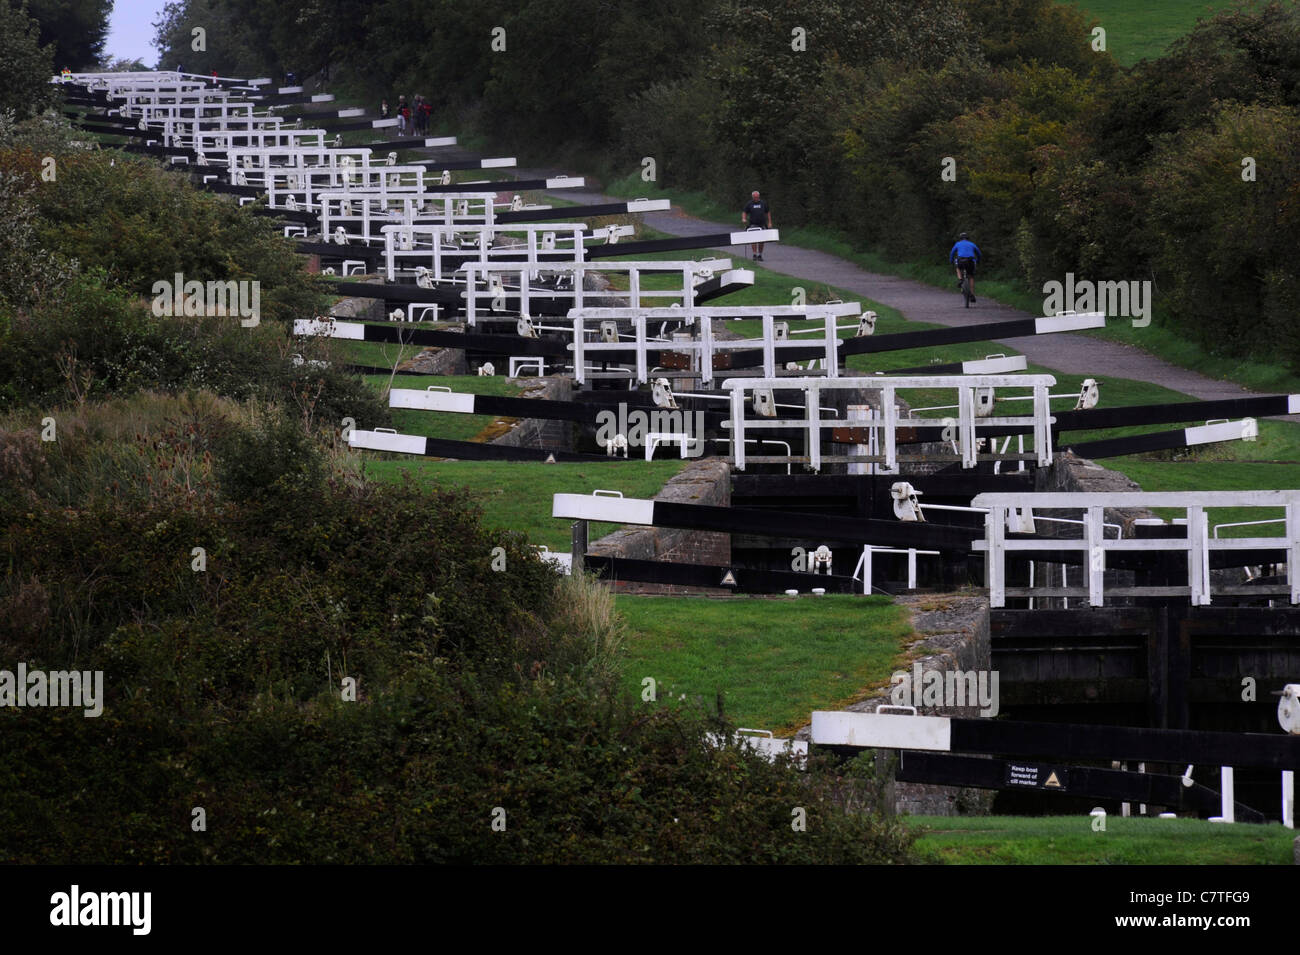 The Caen Hill locks on the Kennet and Avon Canal near Devizes, Wiltshire, - Stock Image